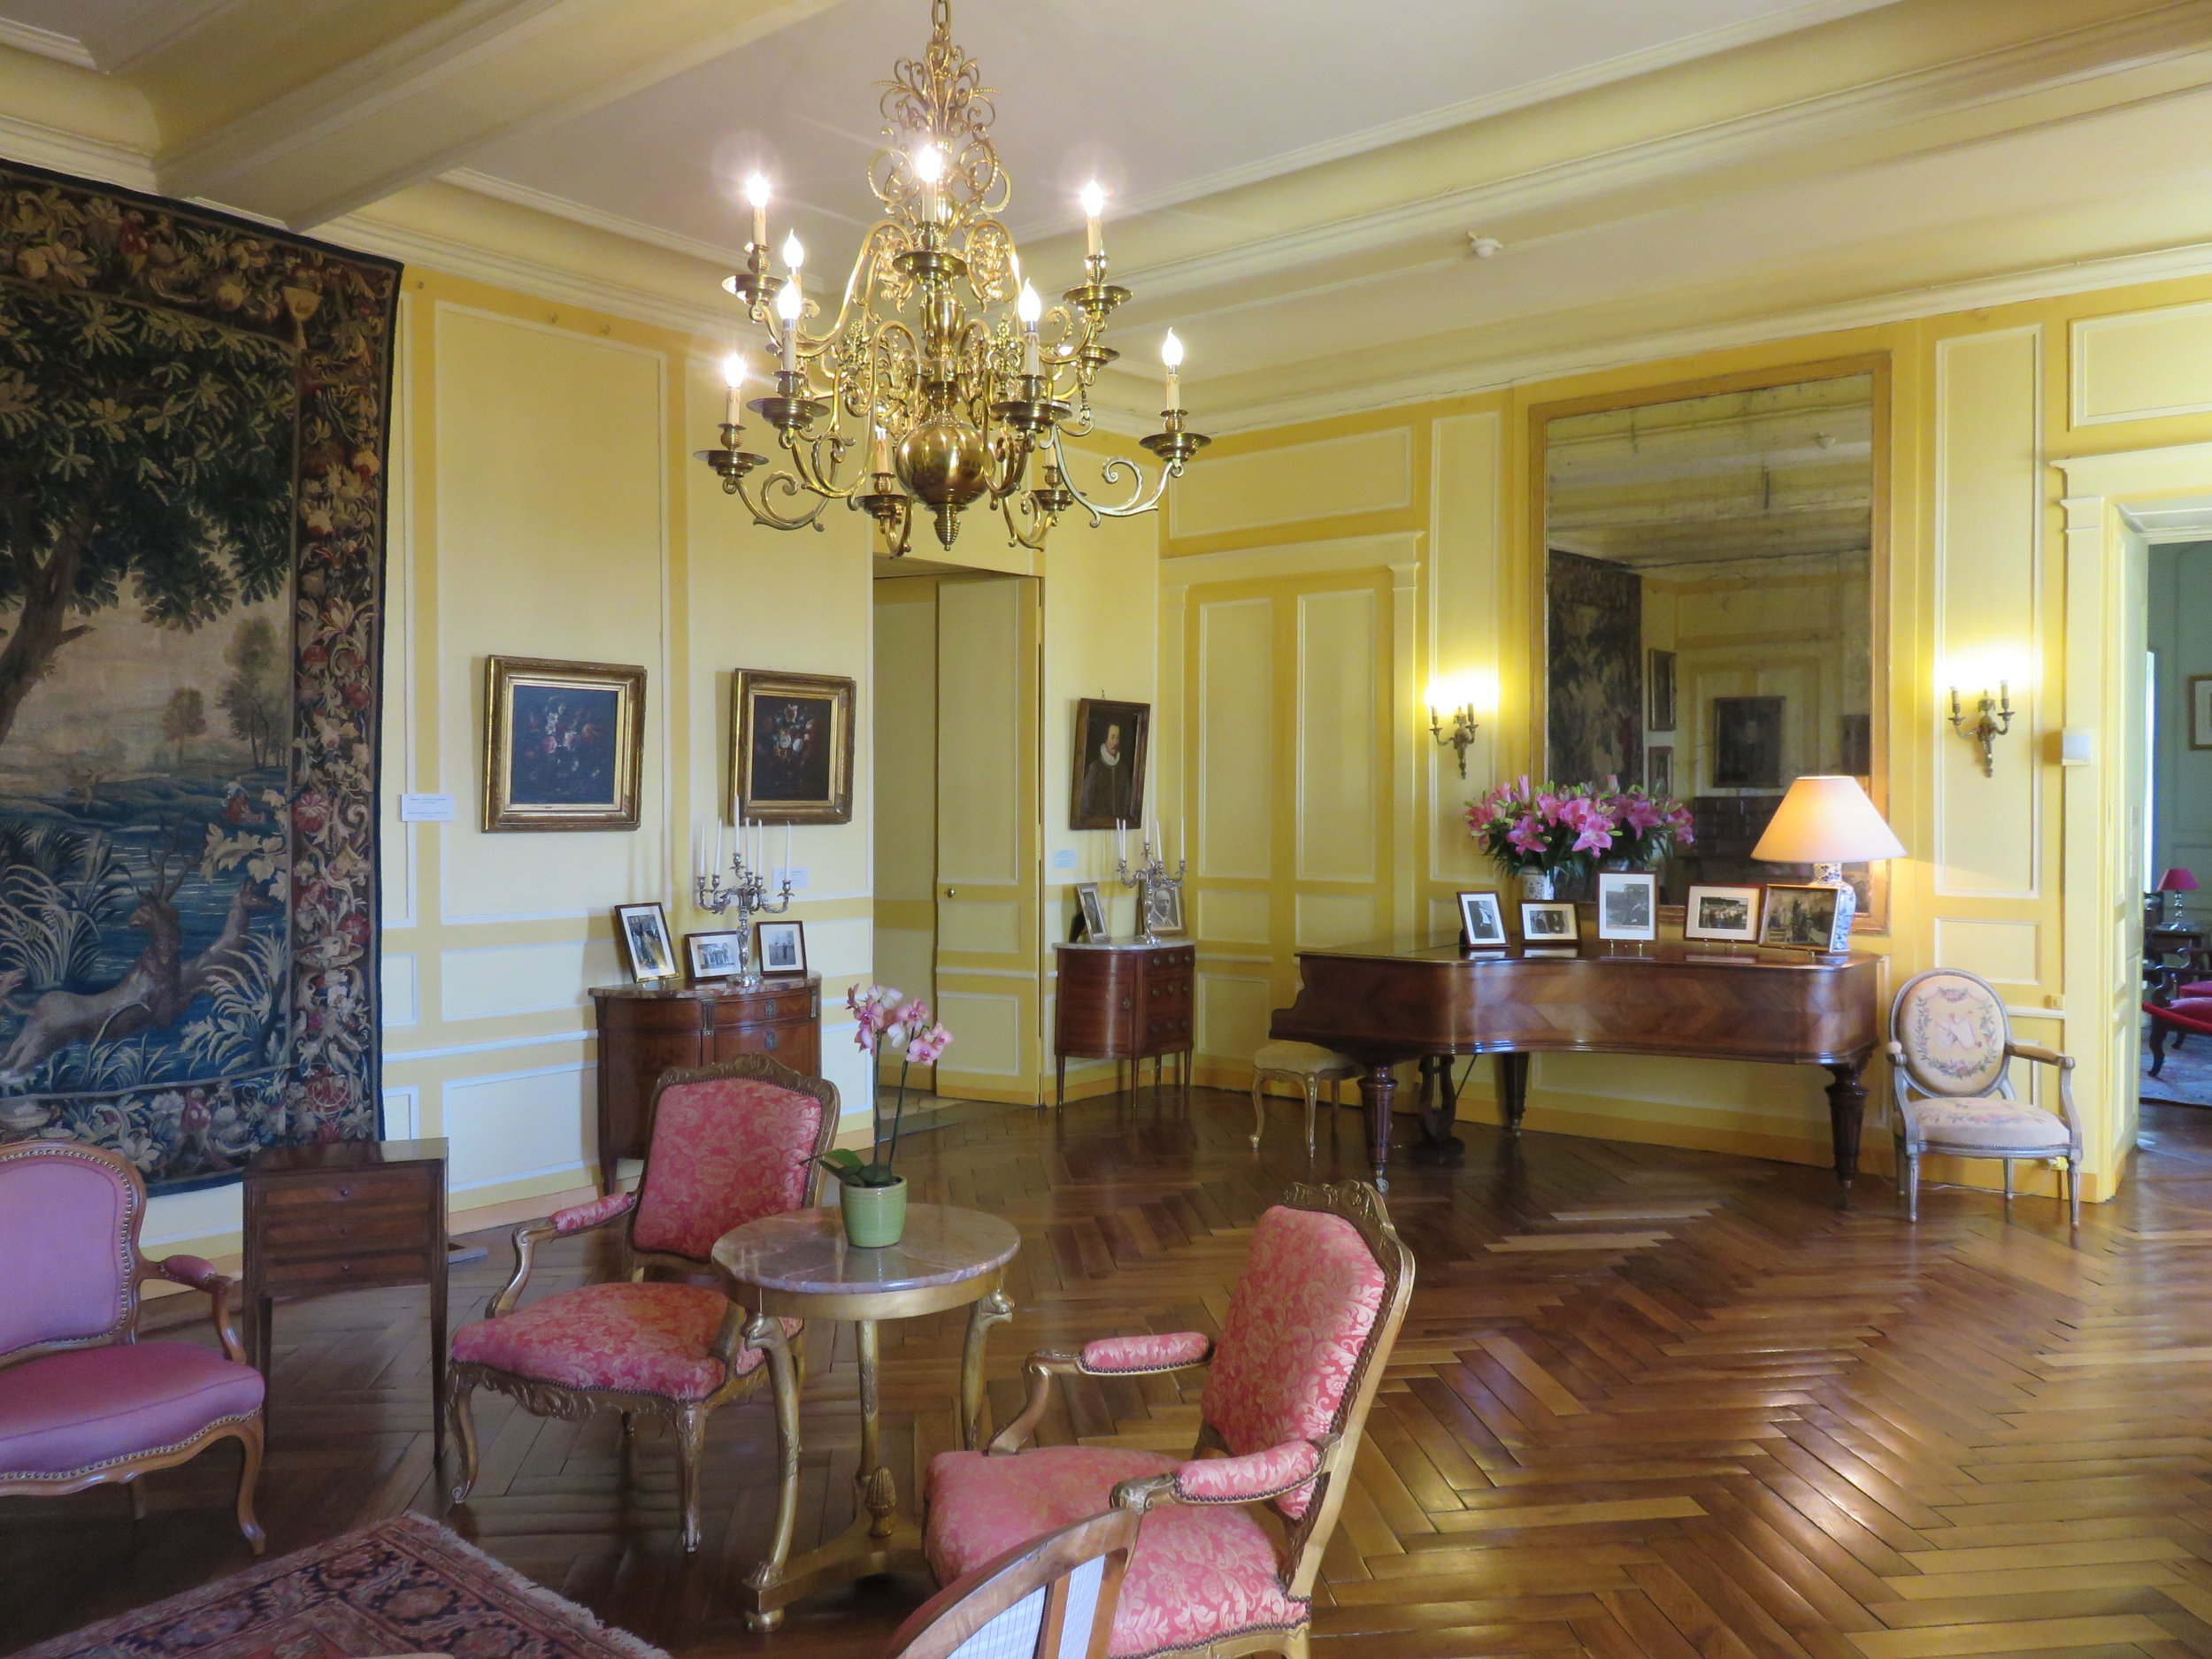 This chateau was actually occupied, though open to the public. It gives us a better sense of what it is like as a living space rather than just a museum.